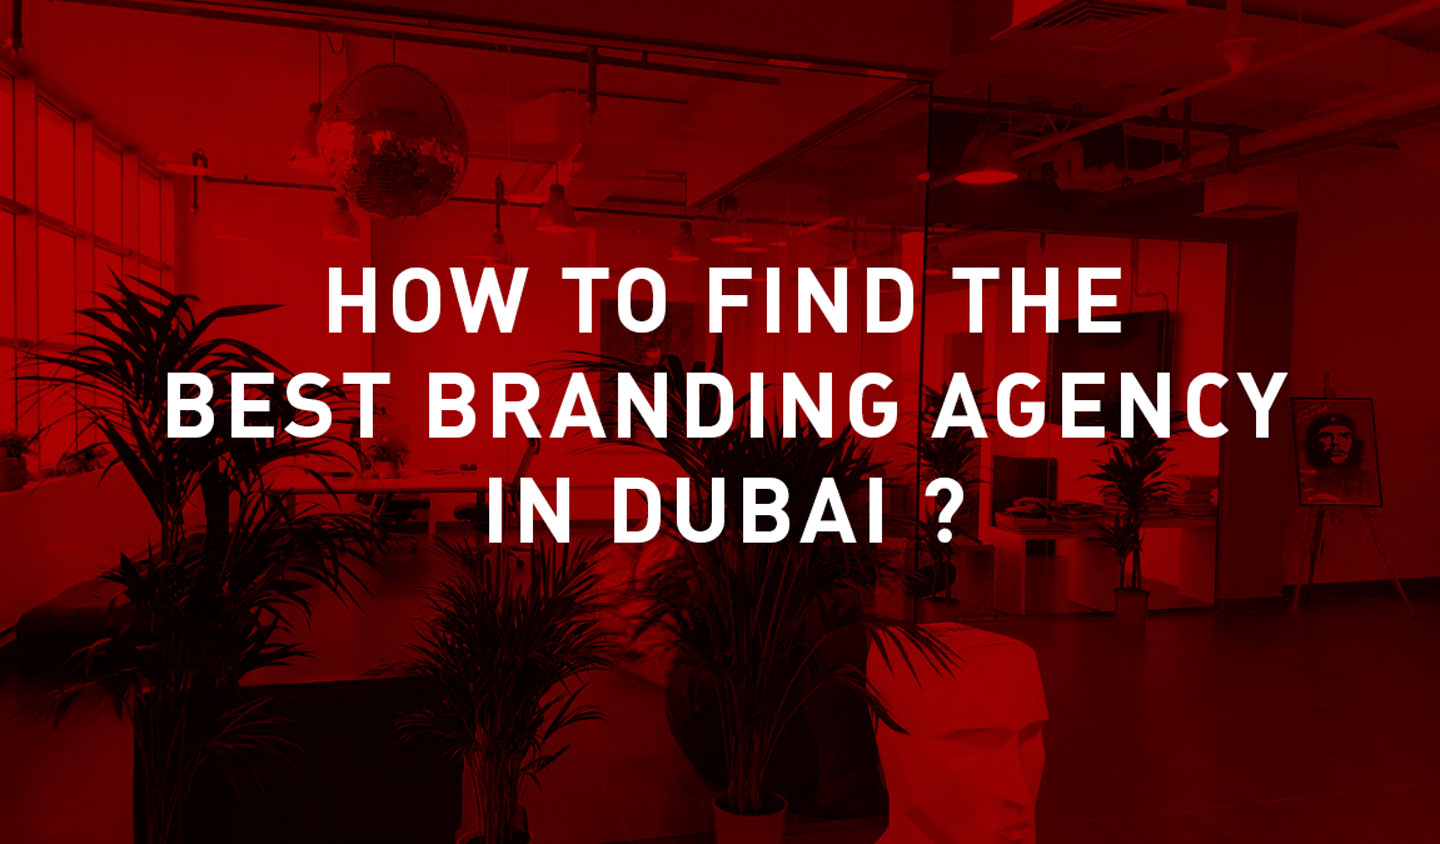 find_the_best_branding_agency_in_dubai